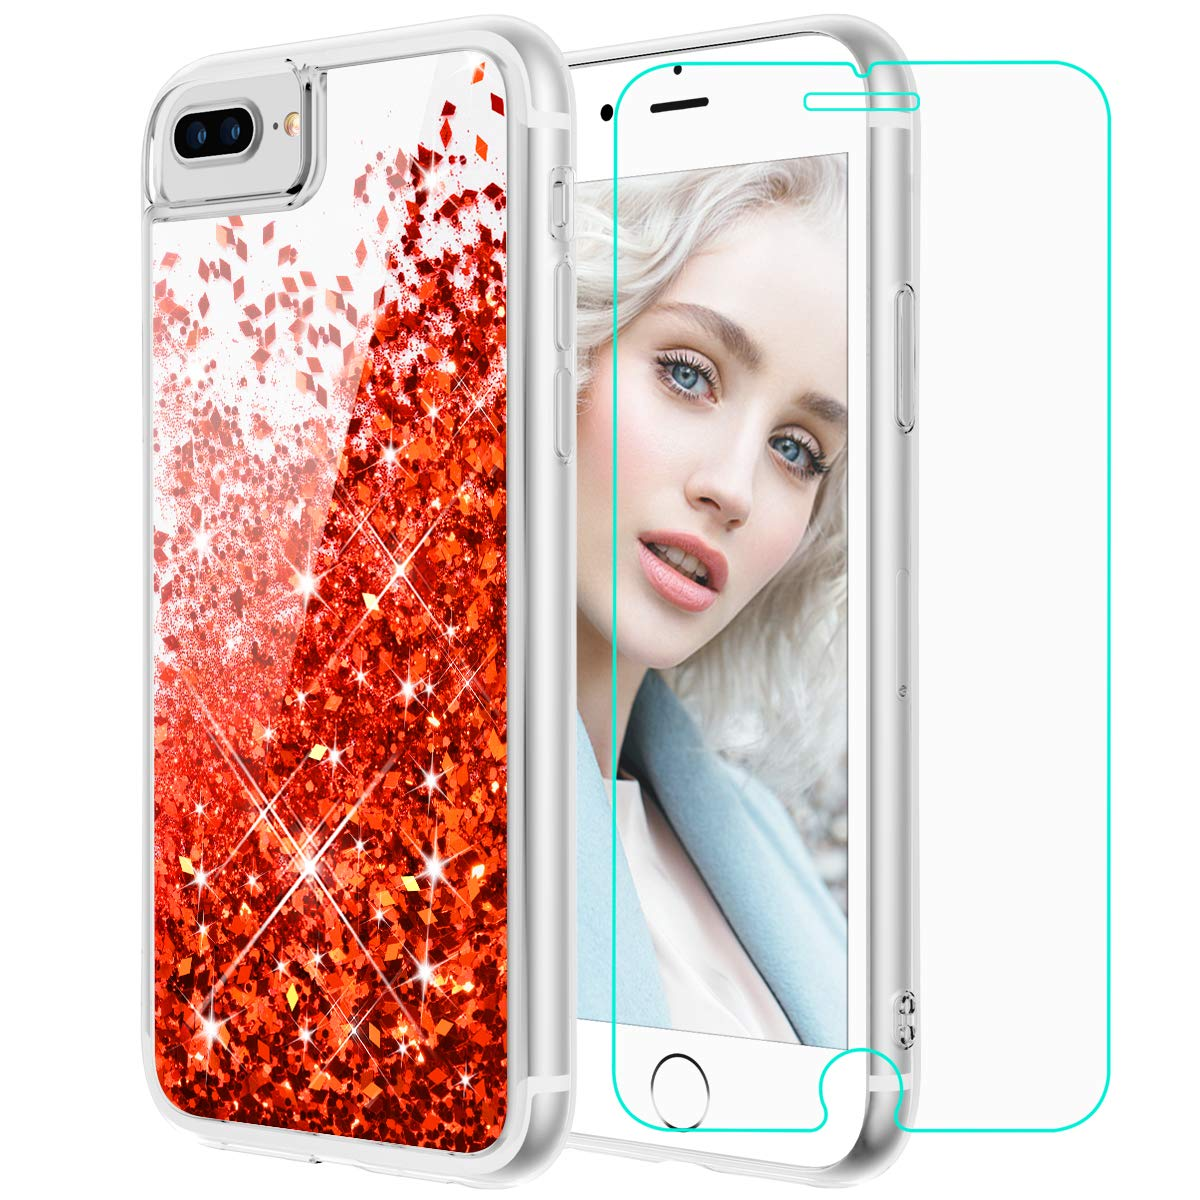 Maxdara iPhone 8 Plus Case, iPhone 7 Plus Glitter Liquid Case with Screen Protector Floating Bling Sparkle Luxury Pretty Girls Women Case for iPhone 6 Plus 6s Plus 7 Plus 8 Plus (Red)